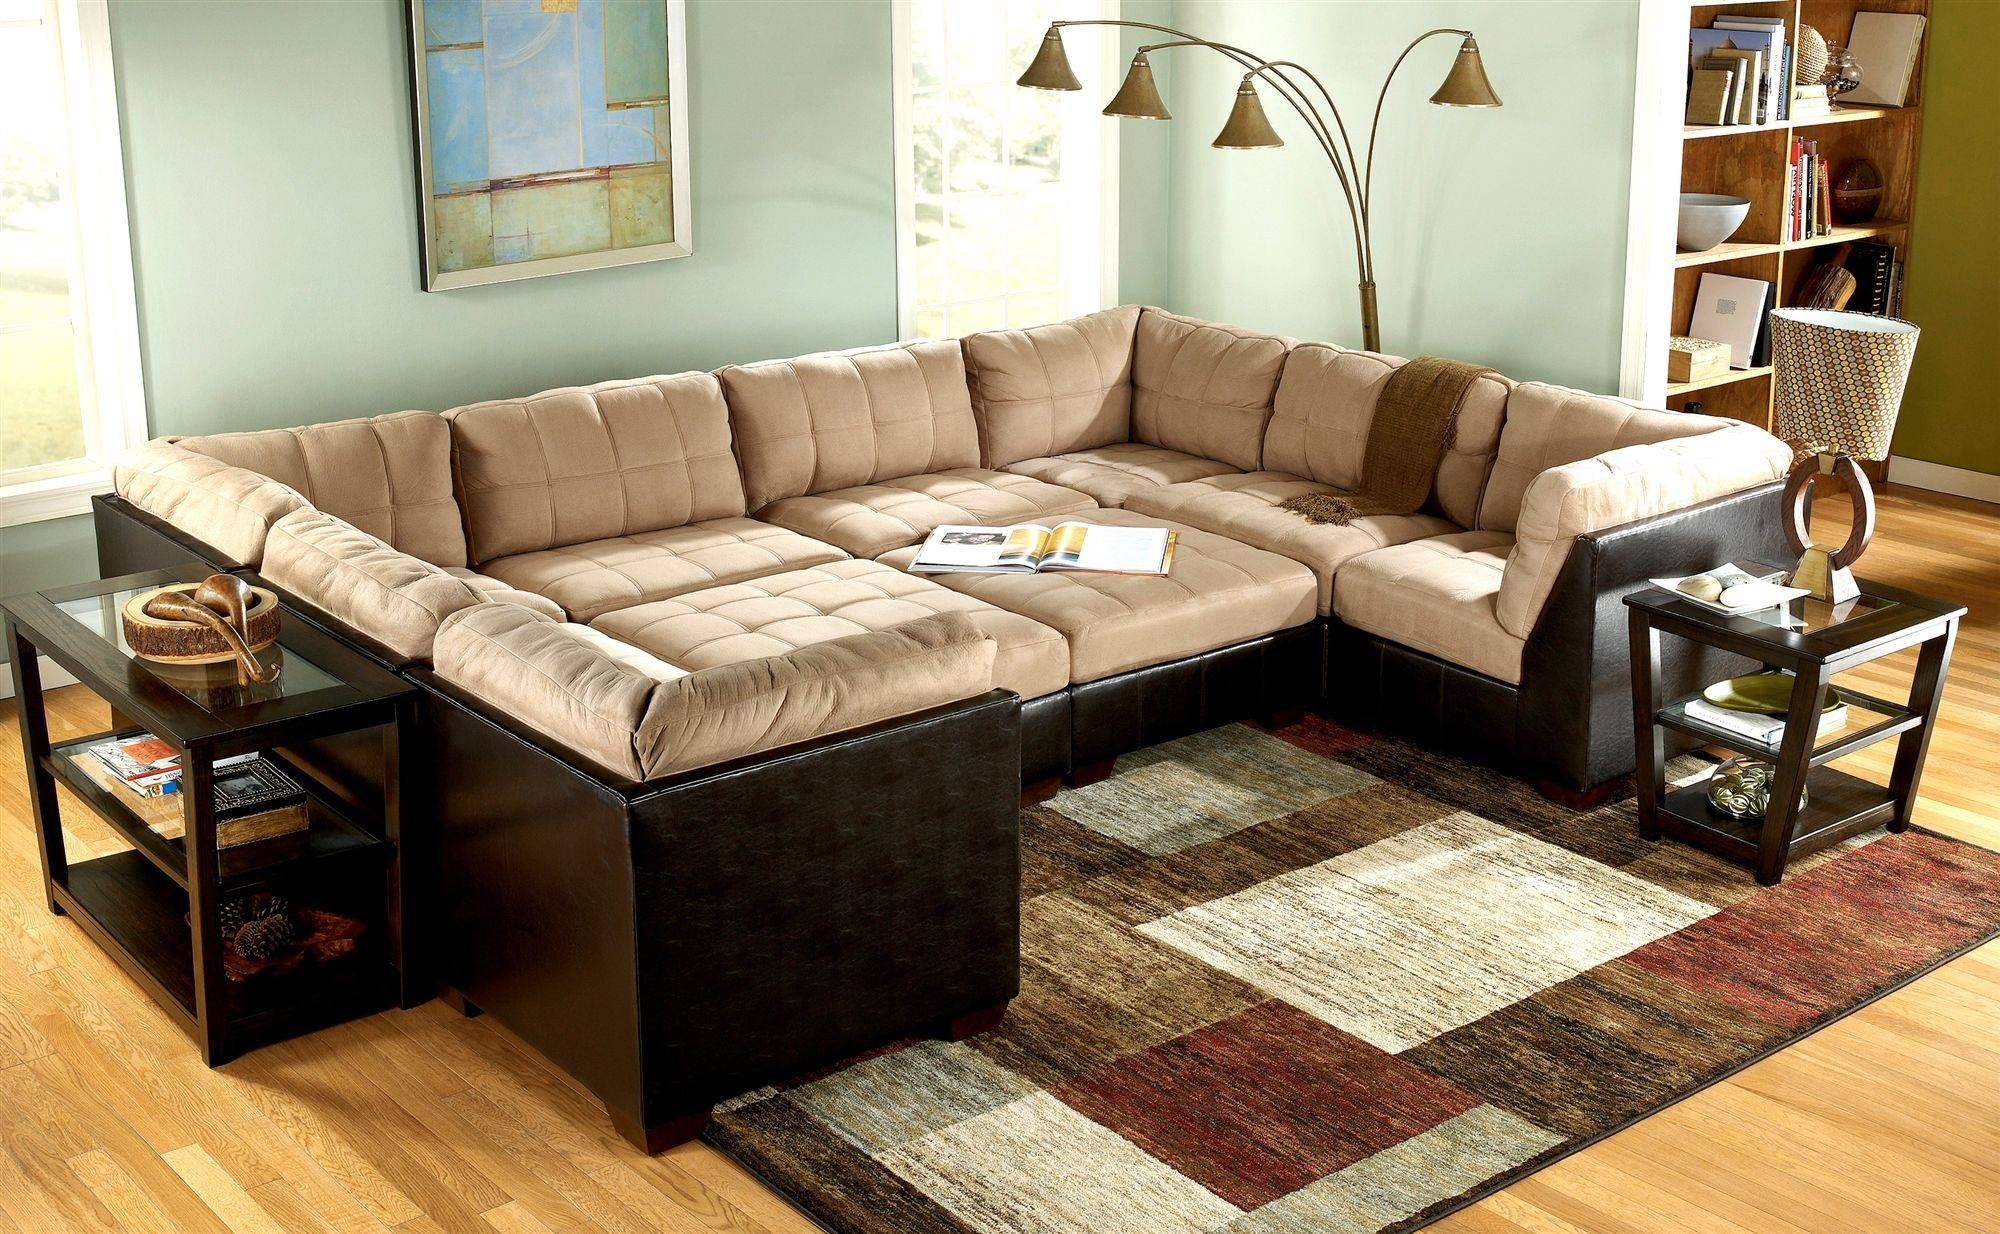 Furniture: Charming In Cheap Sectional Sofas In Cream And Black On regarding Black Sectional Sofa for Cheap (Image 7 of 30)